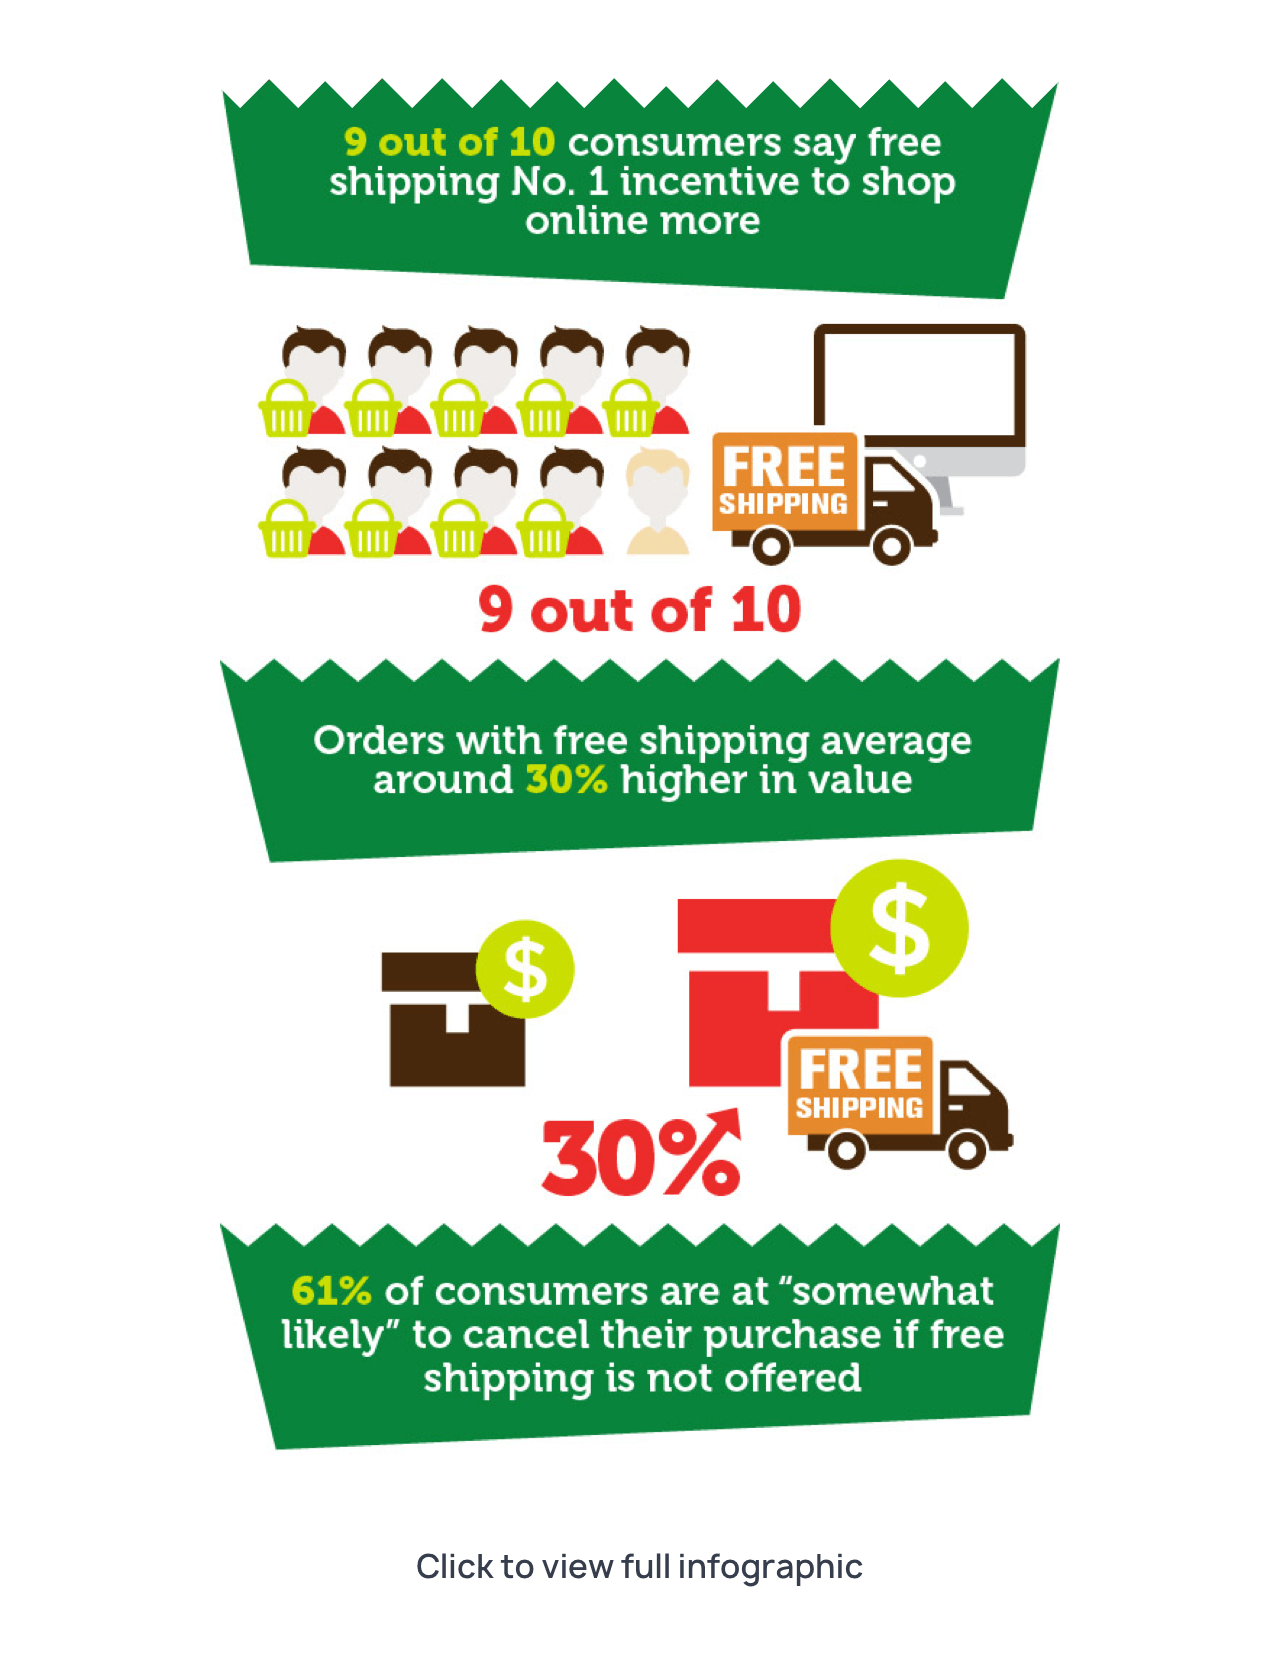 Why is it important to offer free shipping – infographic